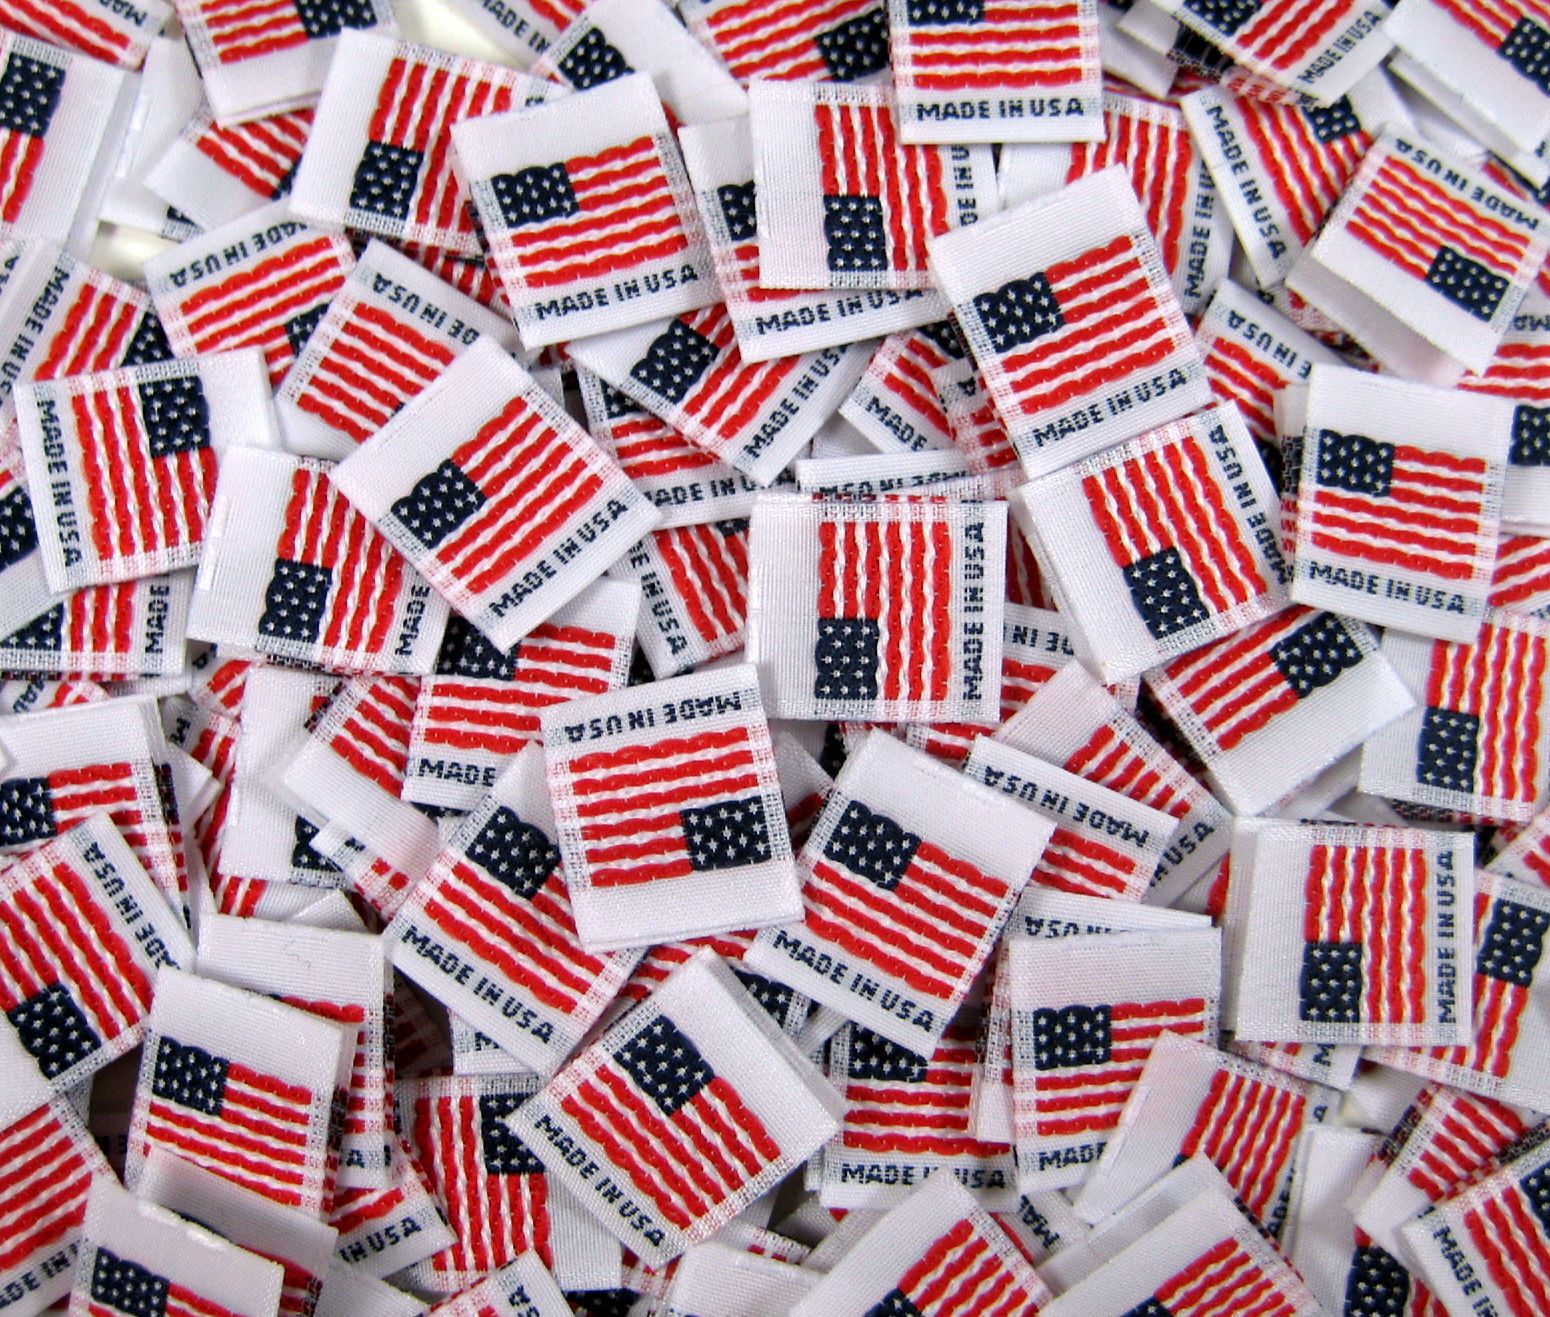 100 pcs FOLDED DOUBLE SIDED WOVEN SEWING GARMENT AMERICAN FLAG MADE IN USA